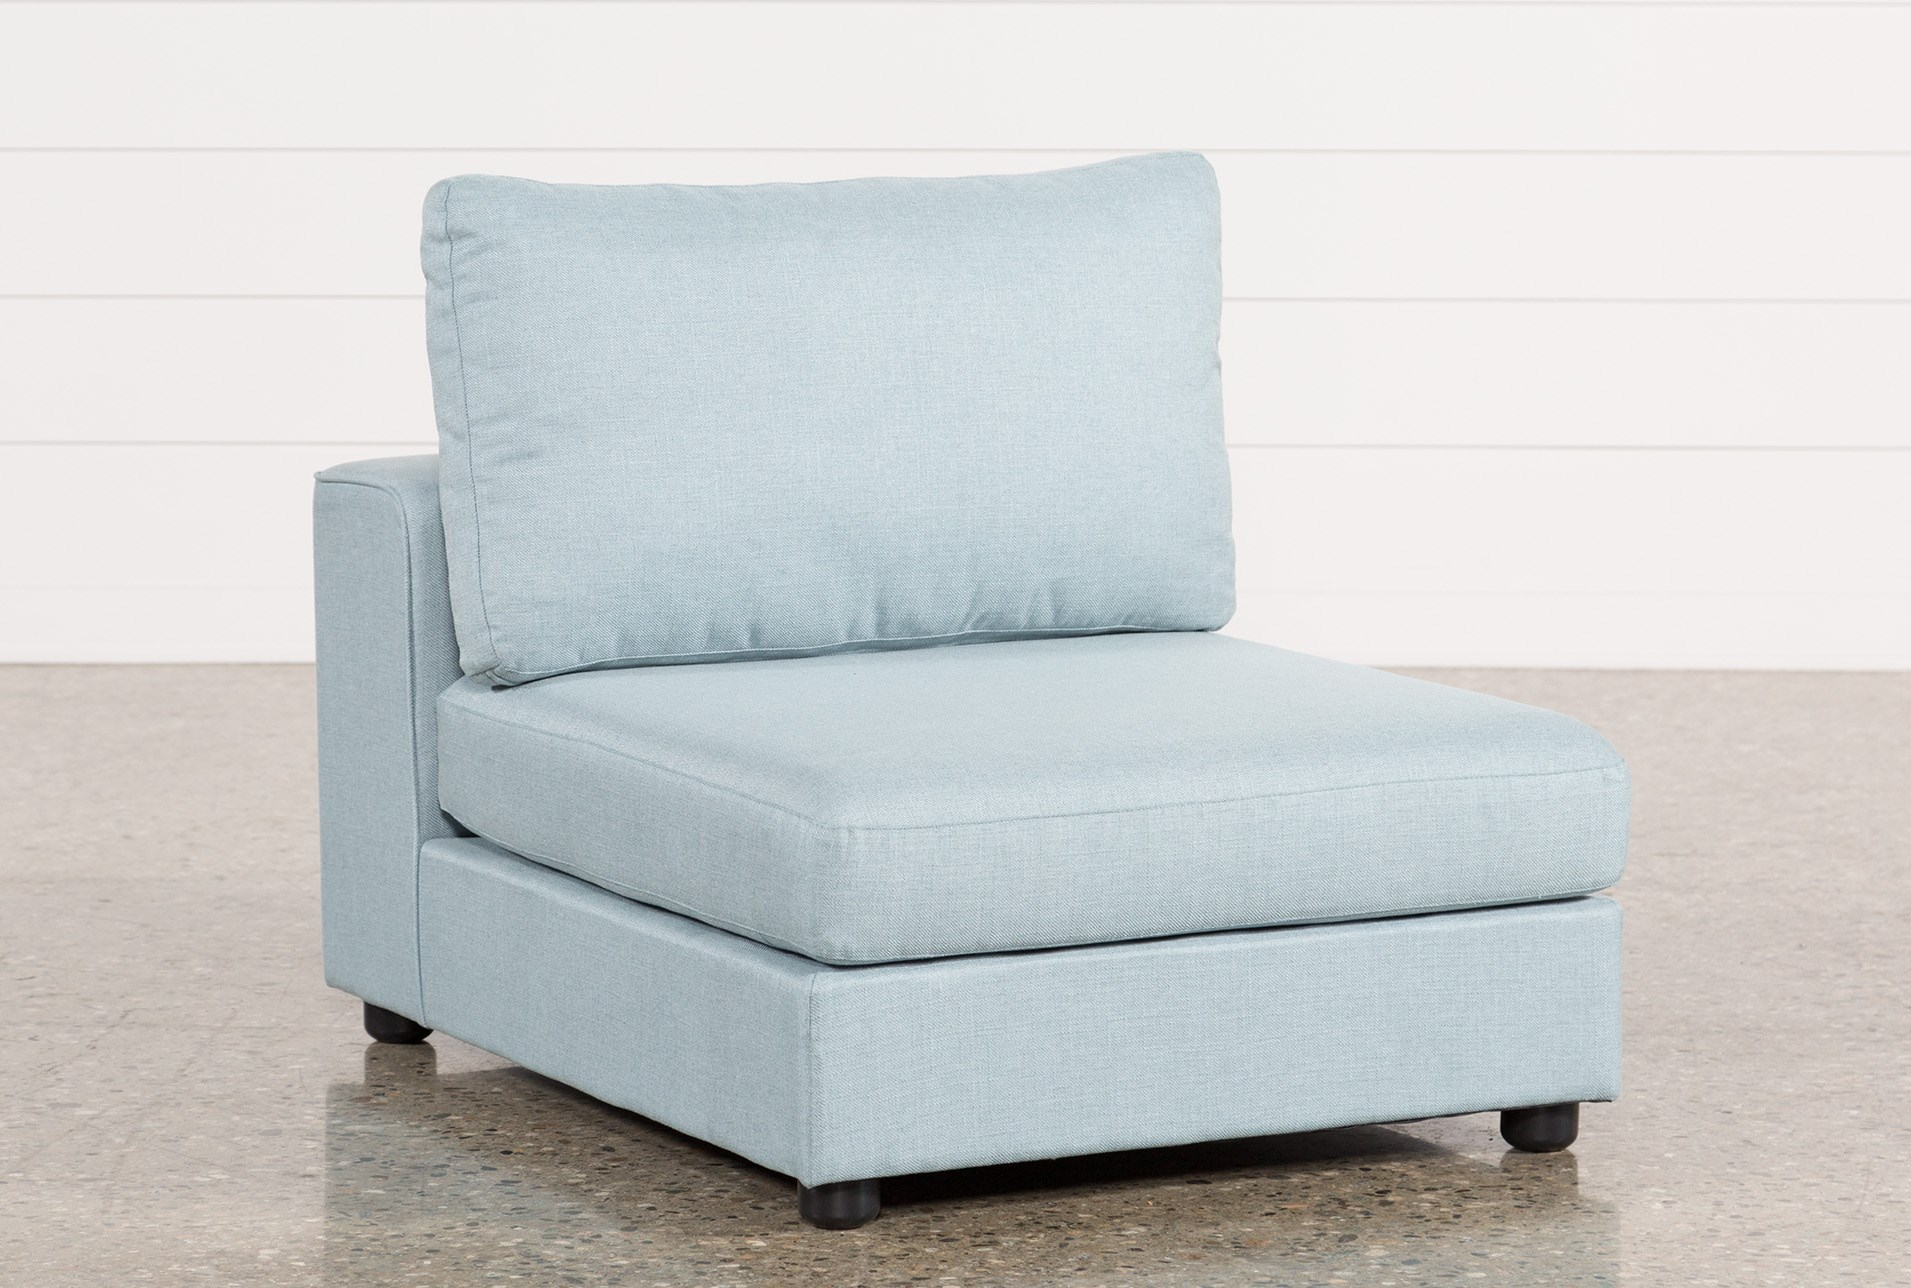 Gabrielle light blue armless chair qty 1 has been successfully added to your cart